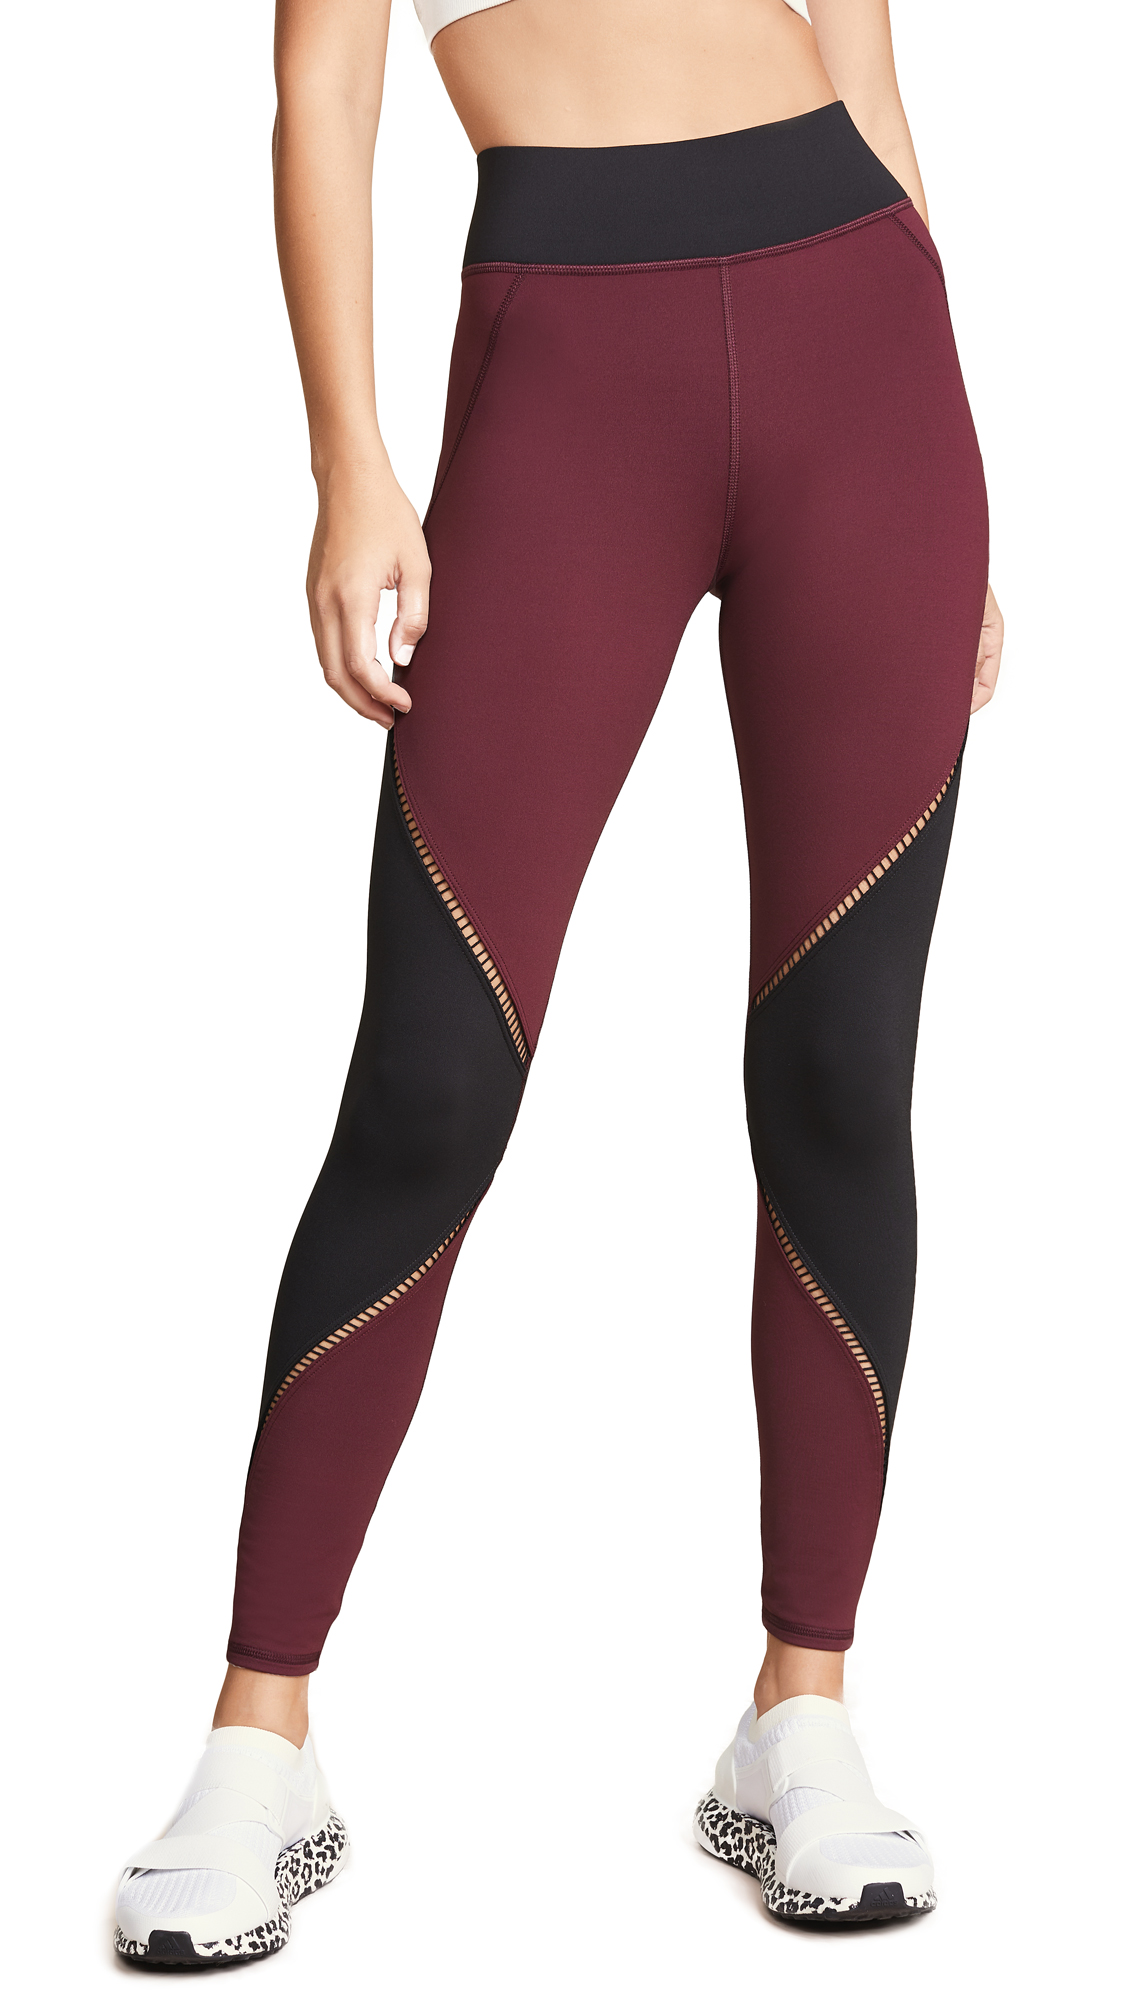 MICHI Axial Leggings in Wine/Black